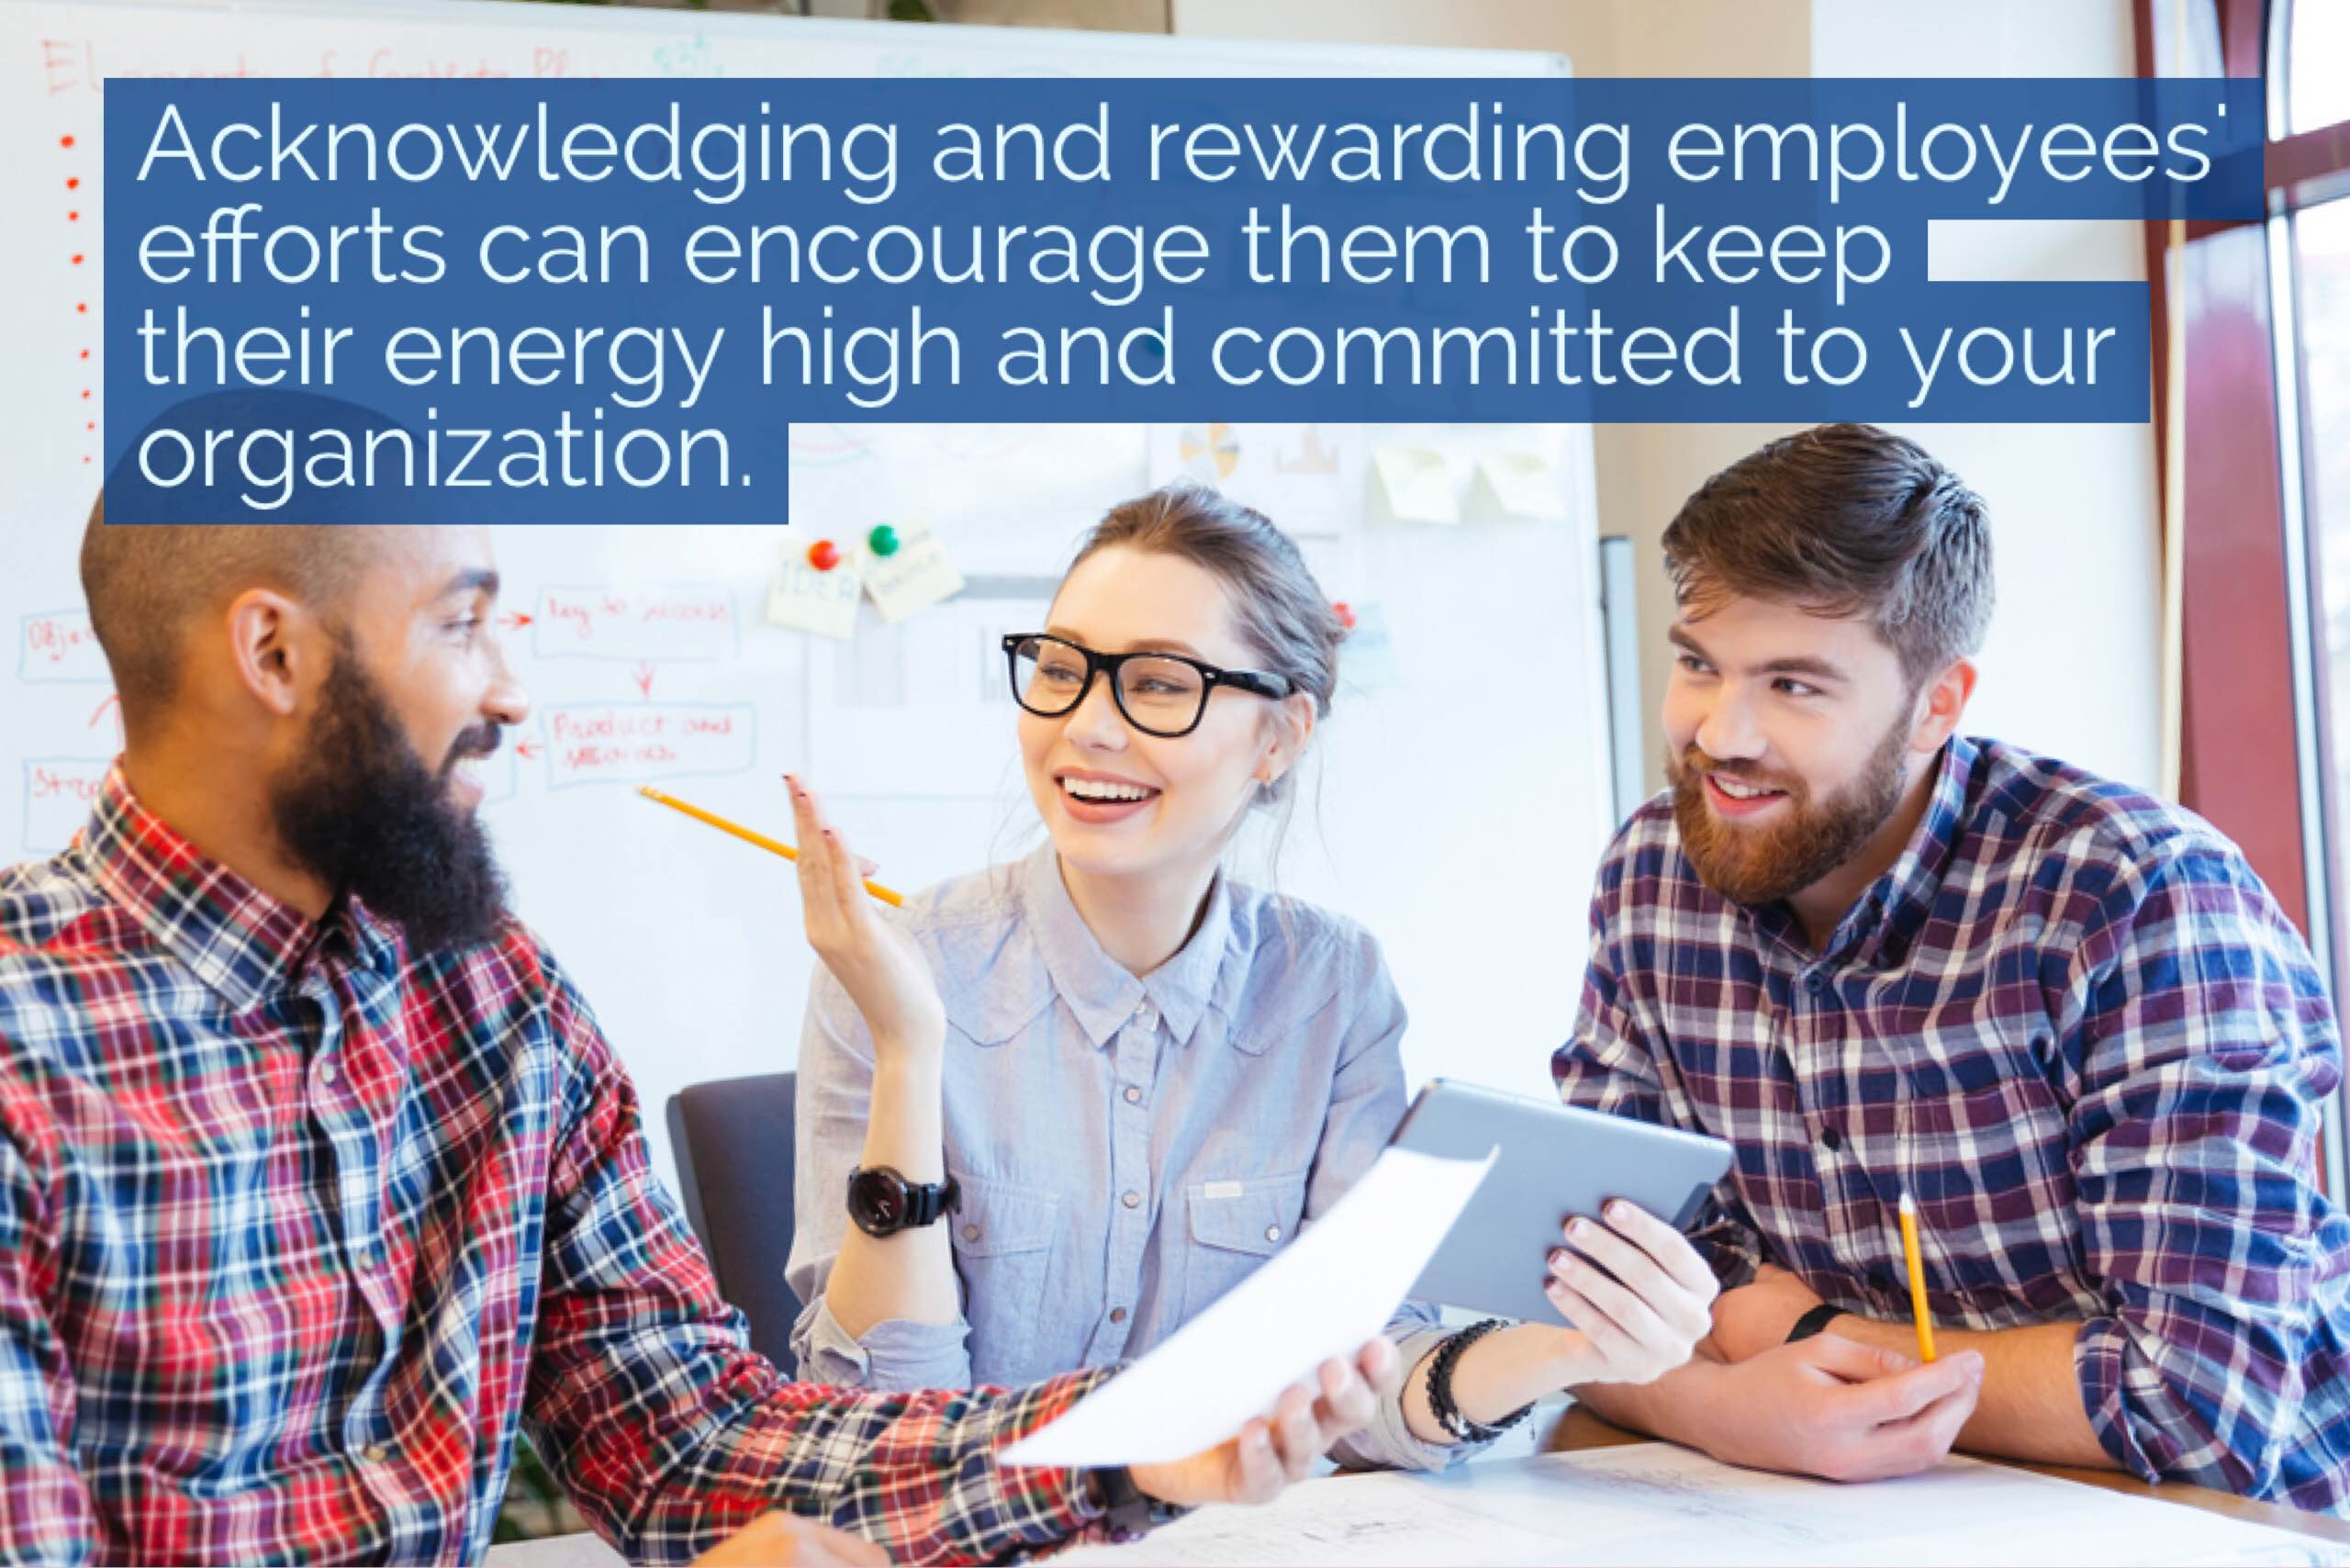 How to inspire high employee performance during tough times